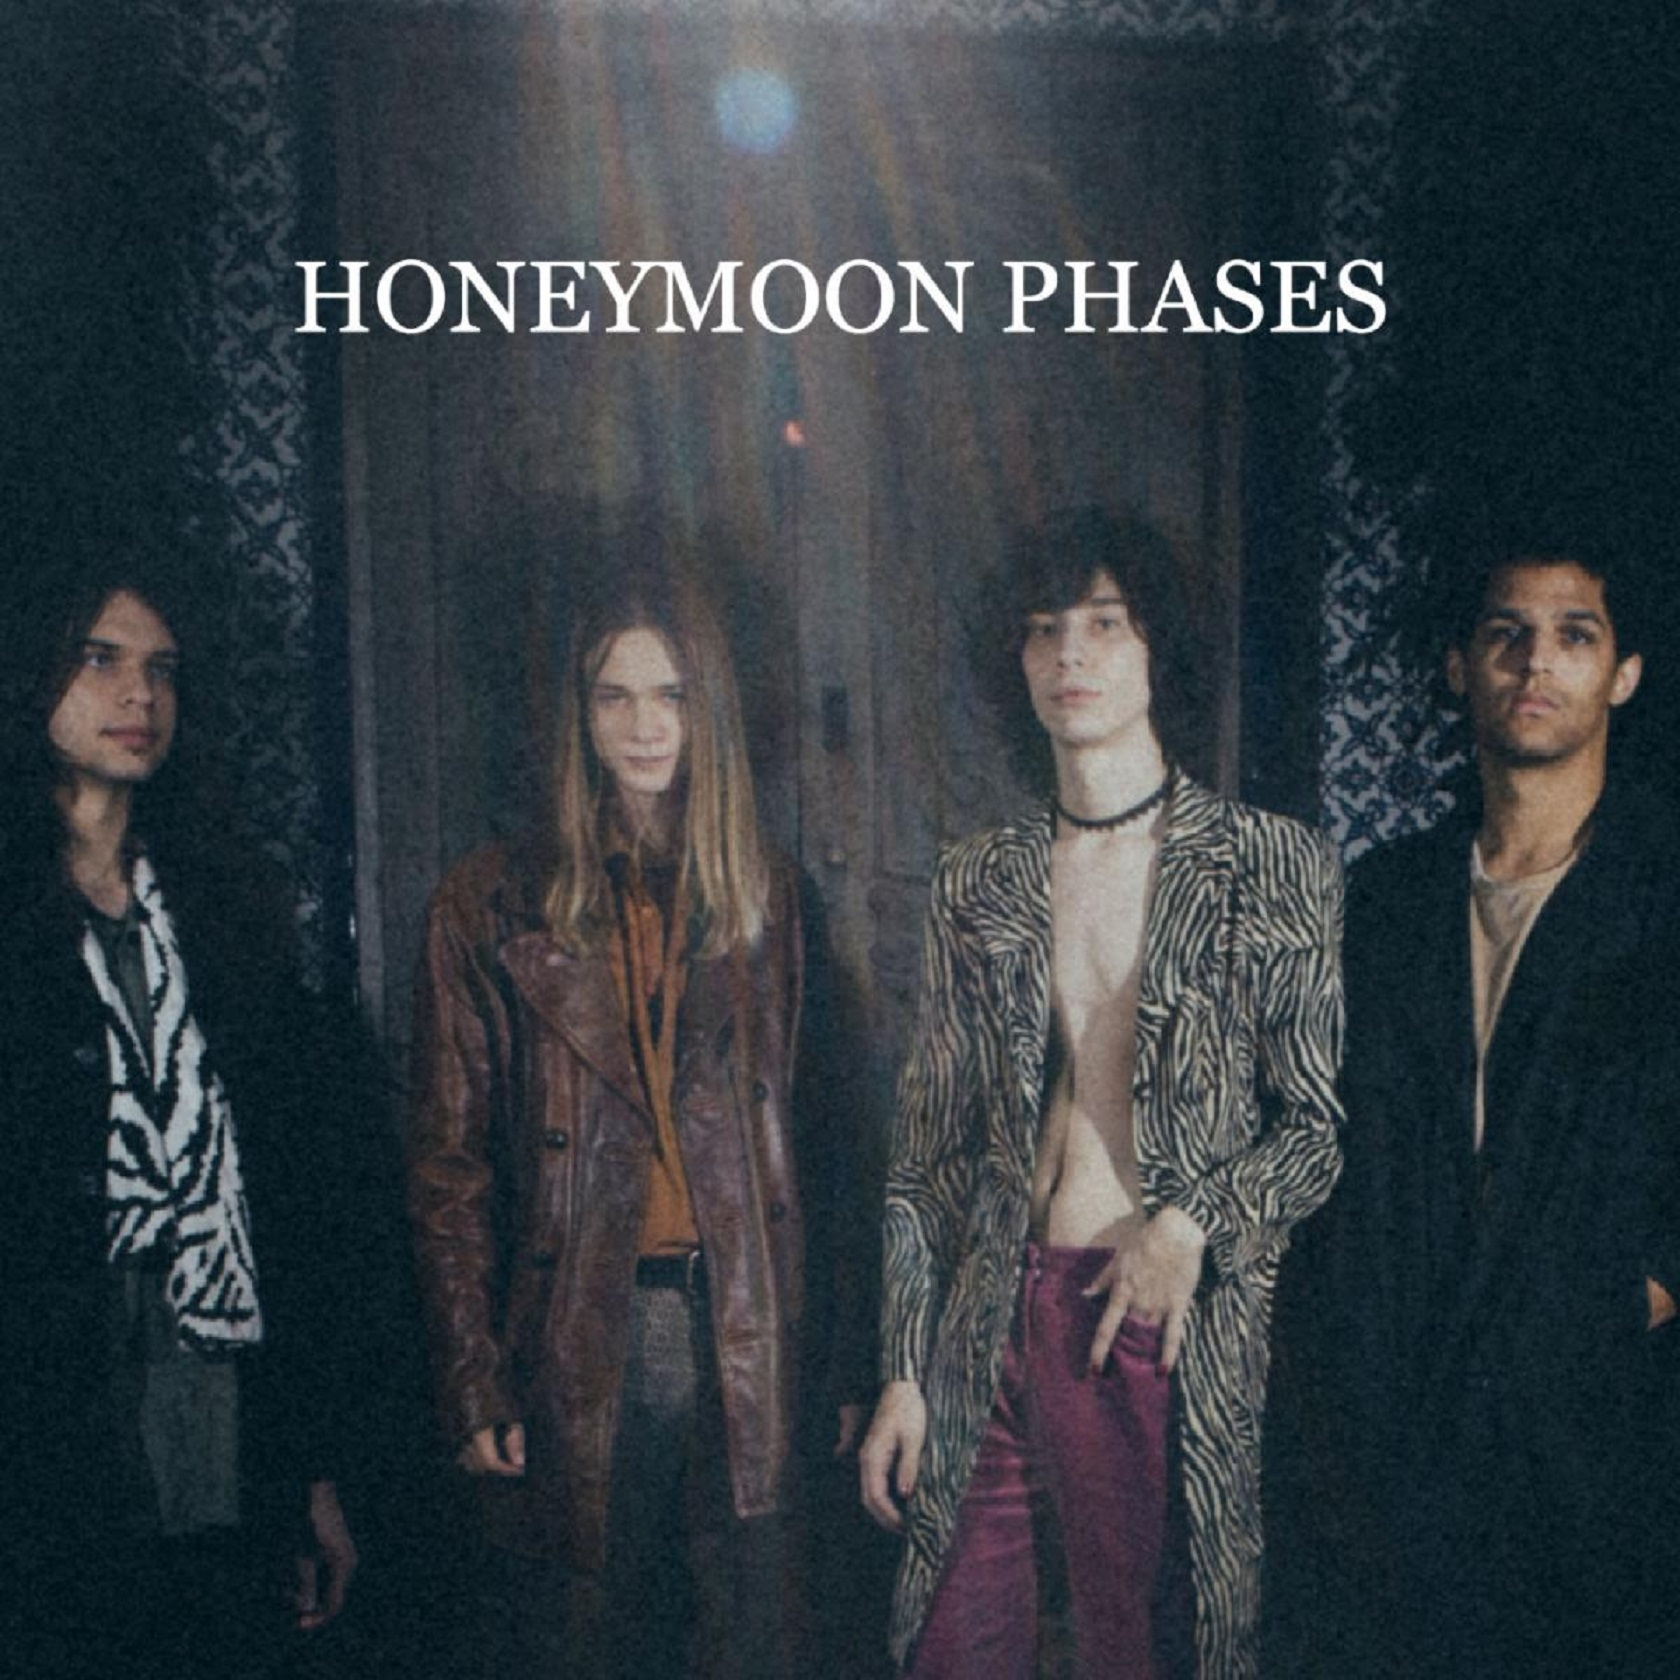 The Cuckoos Release New EP, Honeymoon Phases